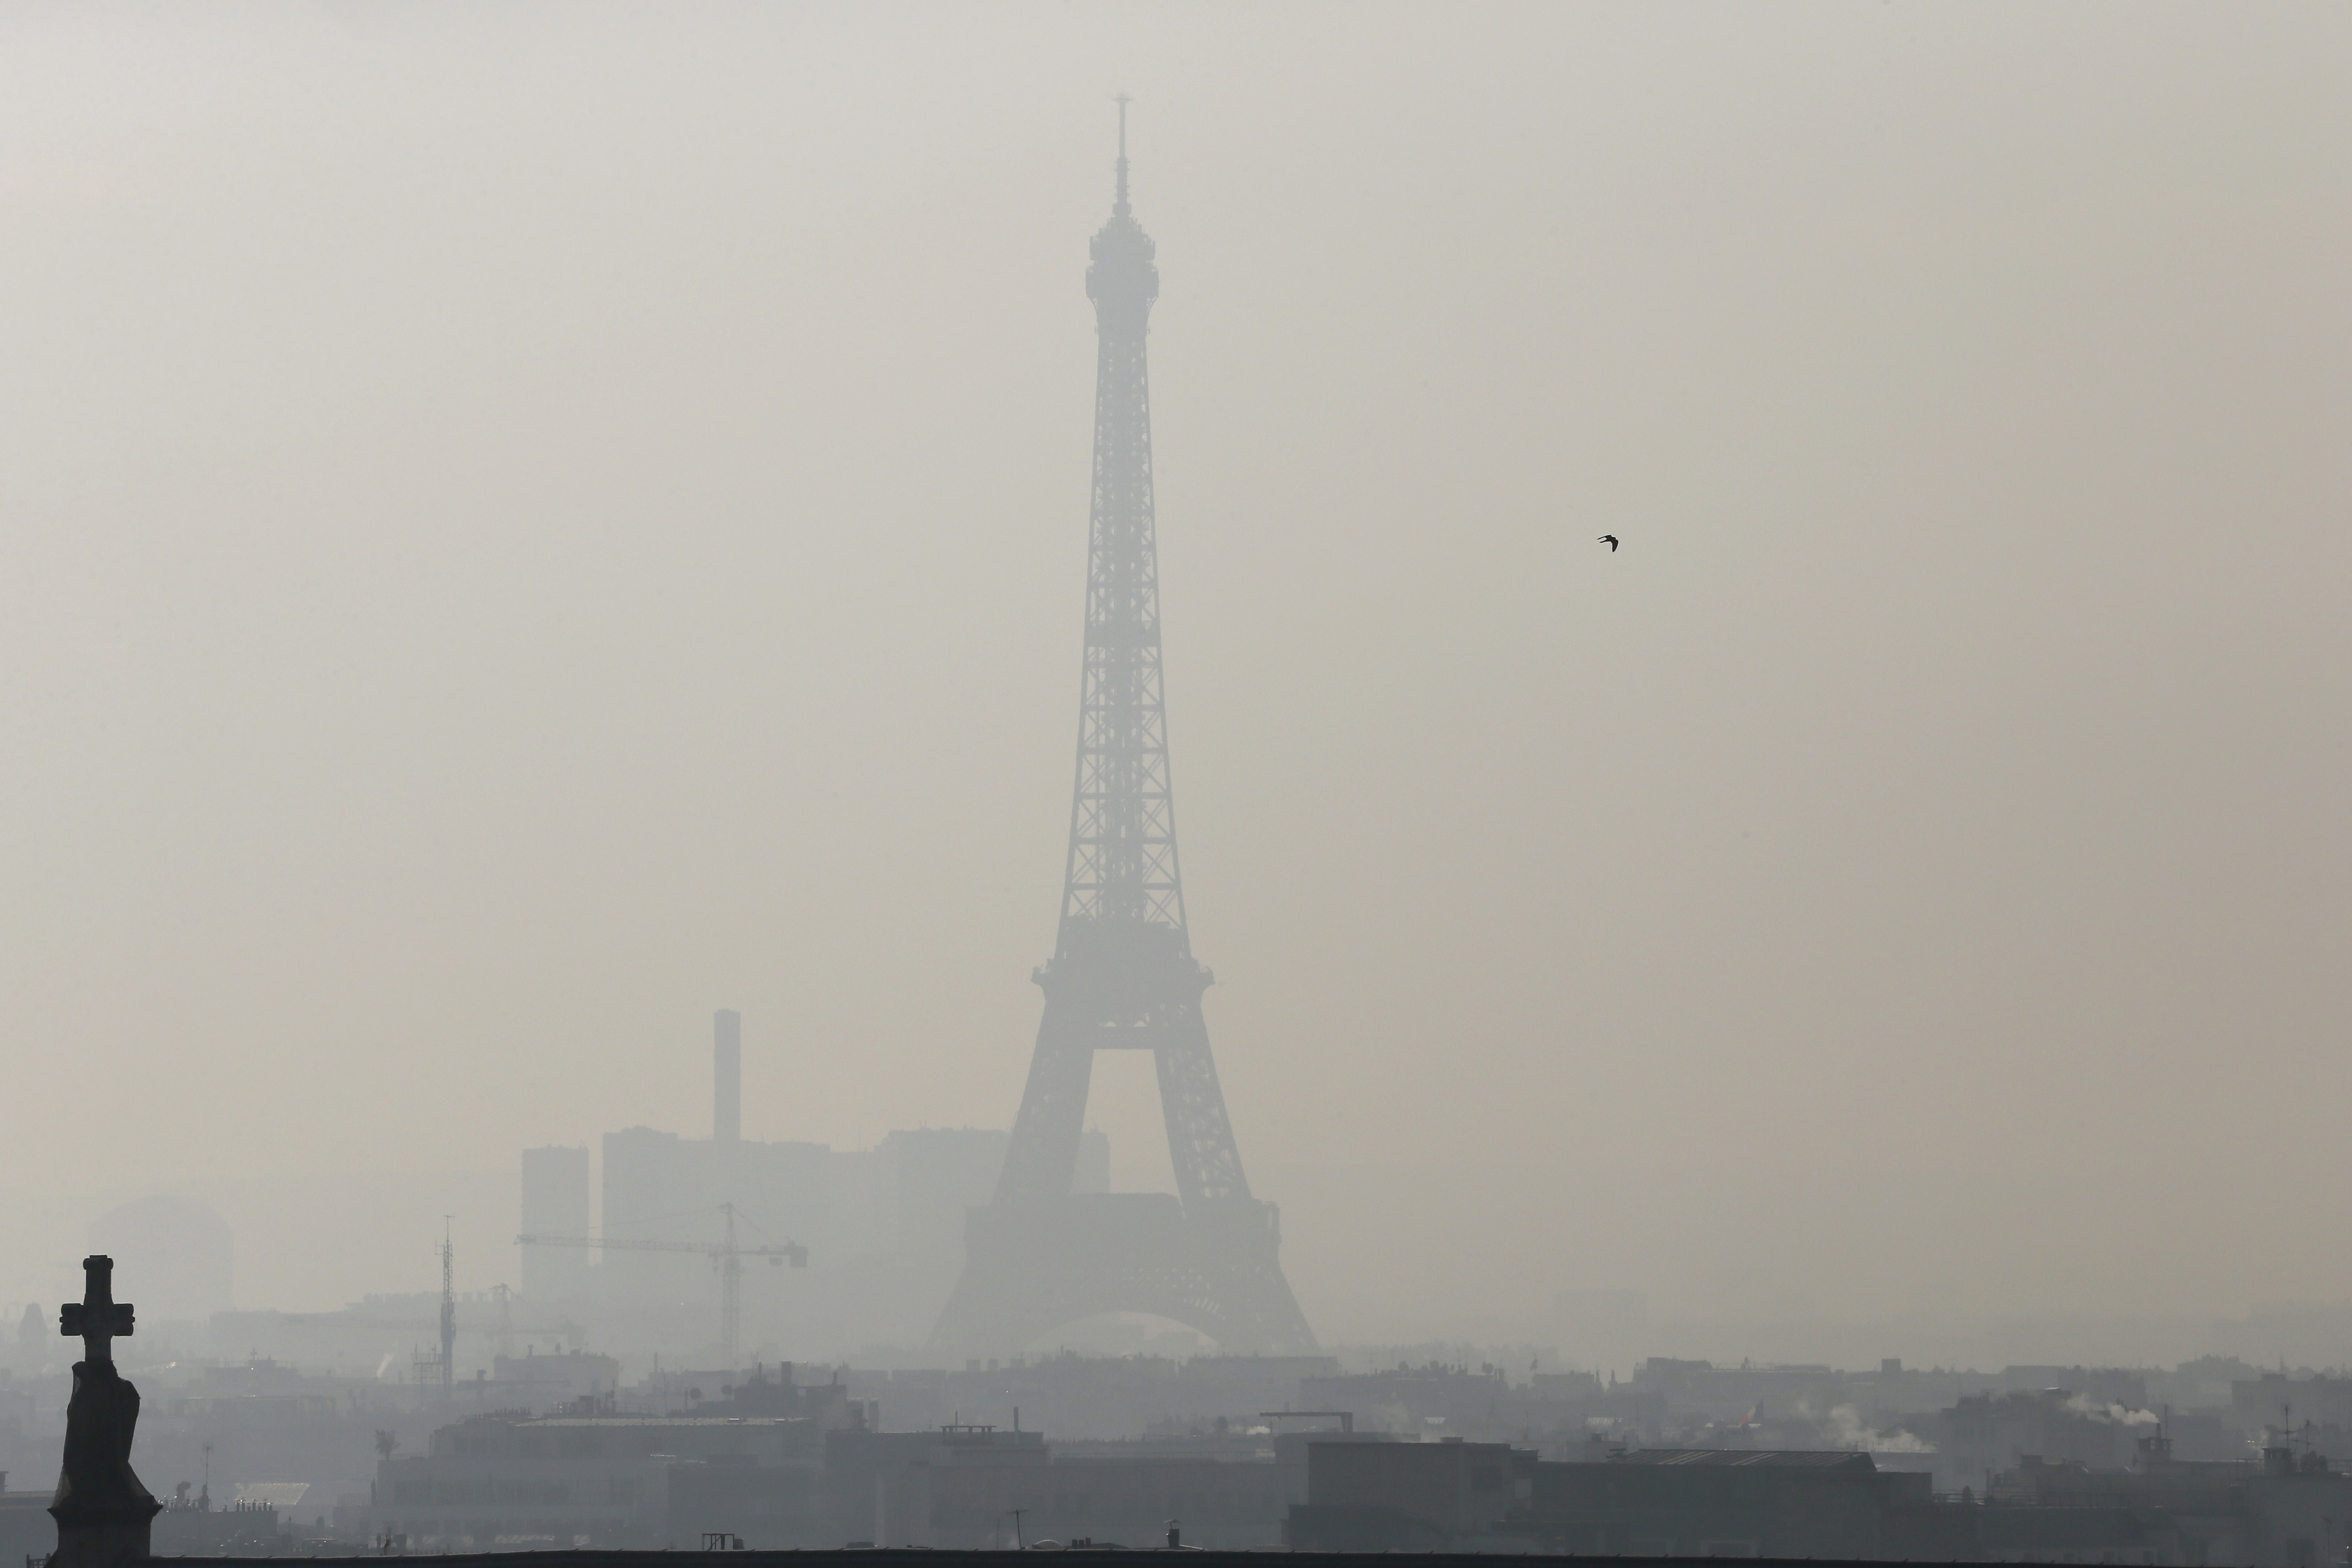 The Eiffel Tower through thick smog on February 12, 2015